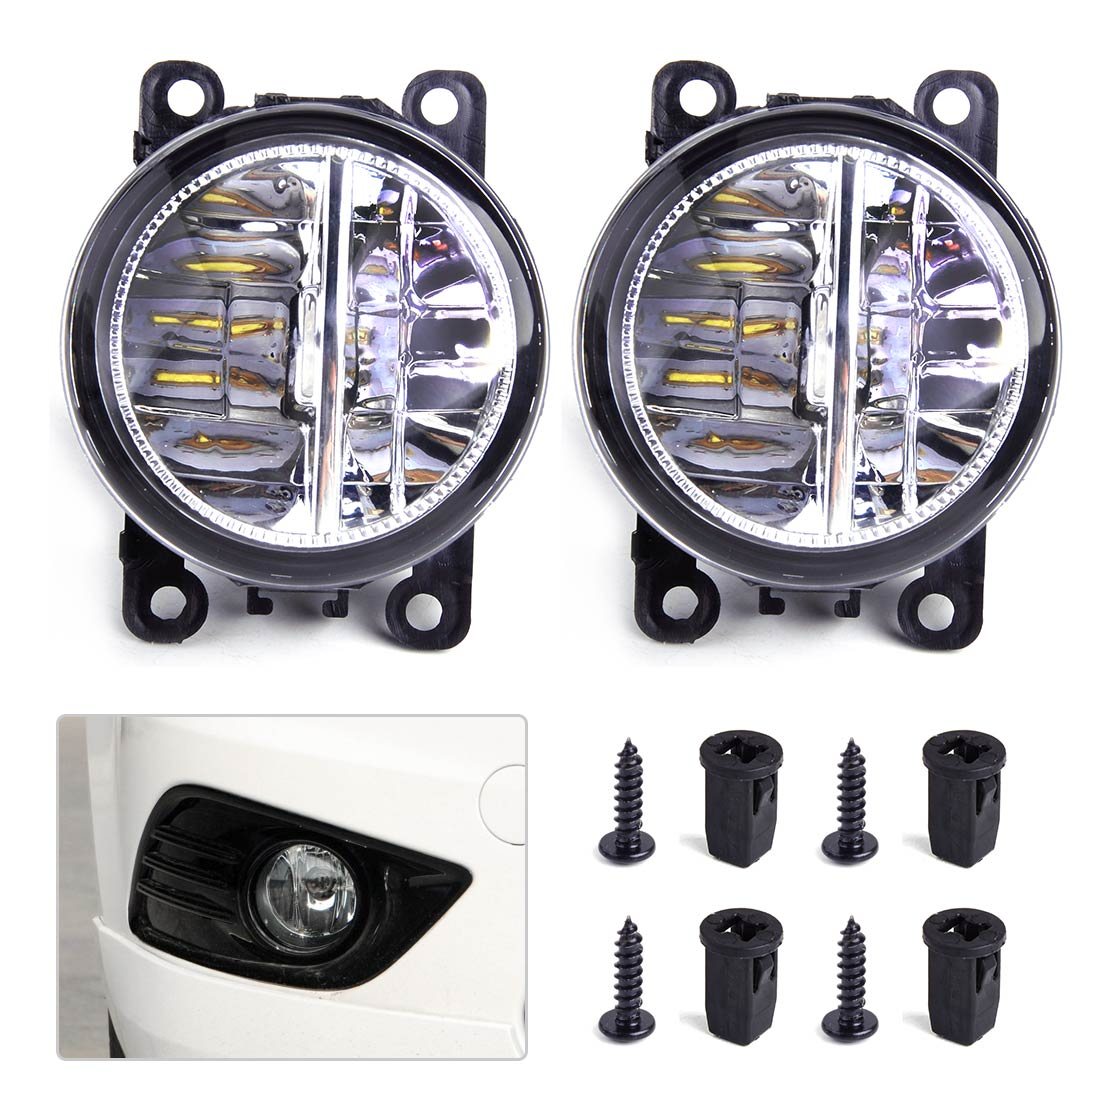 beler 2Pcs Right Left LED Fog Light Lamp 4F9Z-15200-AA 33900STKA11 AC2592111 for Ford Focus Honda Acura Lincoln Nissan Subaru beler fog light lamp h11 female adapter wiring harness sockets wire connector for ford focus fiesta acura nissan honda subaru